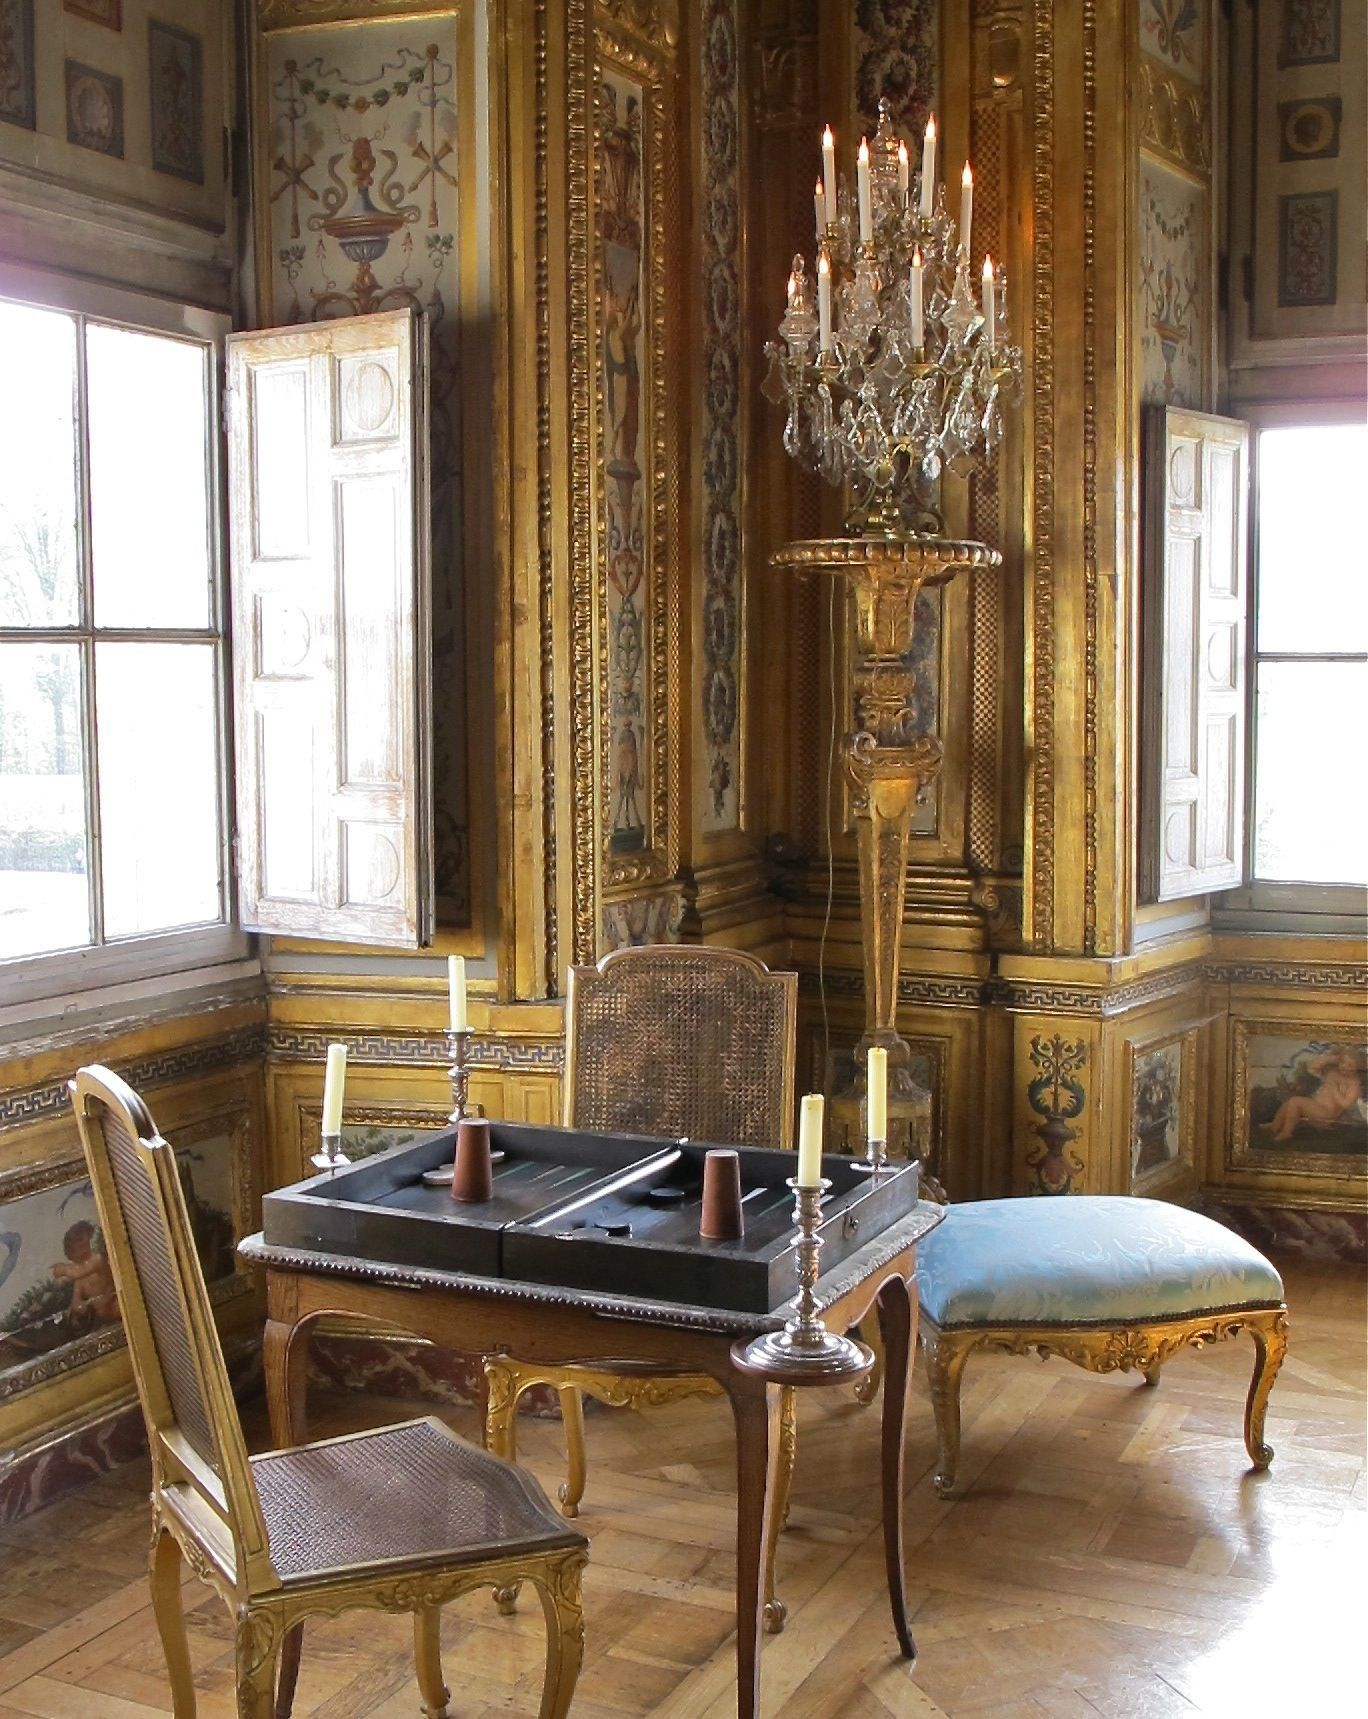 Chair table 17th century - French 17th Century Architecture And D Cor Chateau Vaux Le Vicomte It Is A Baroque